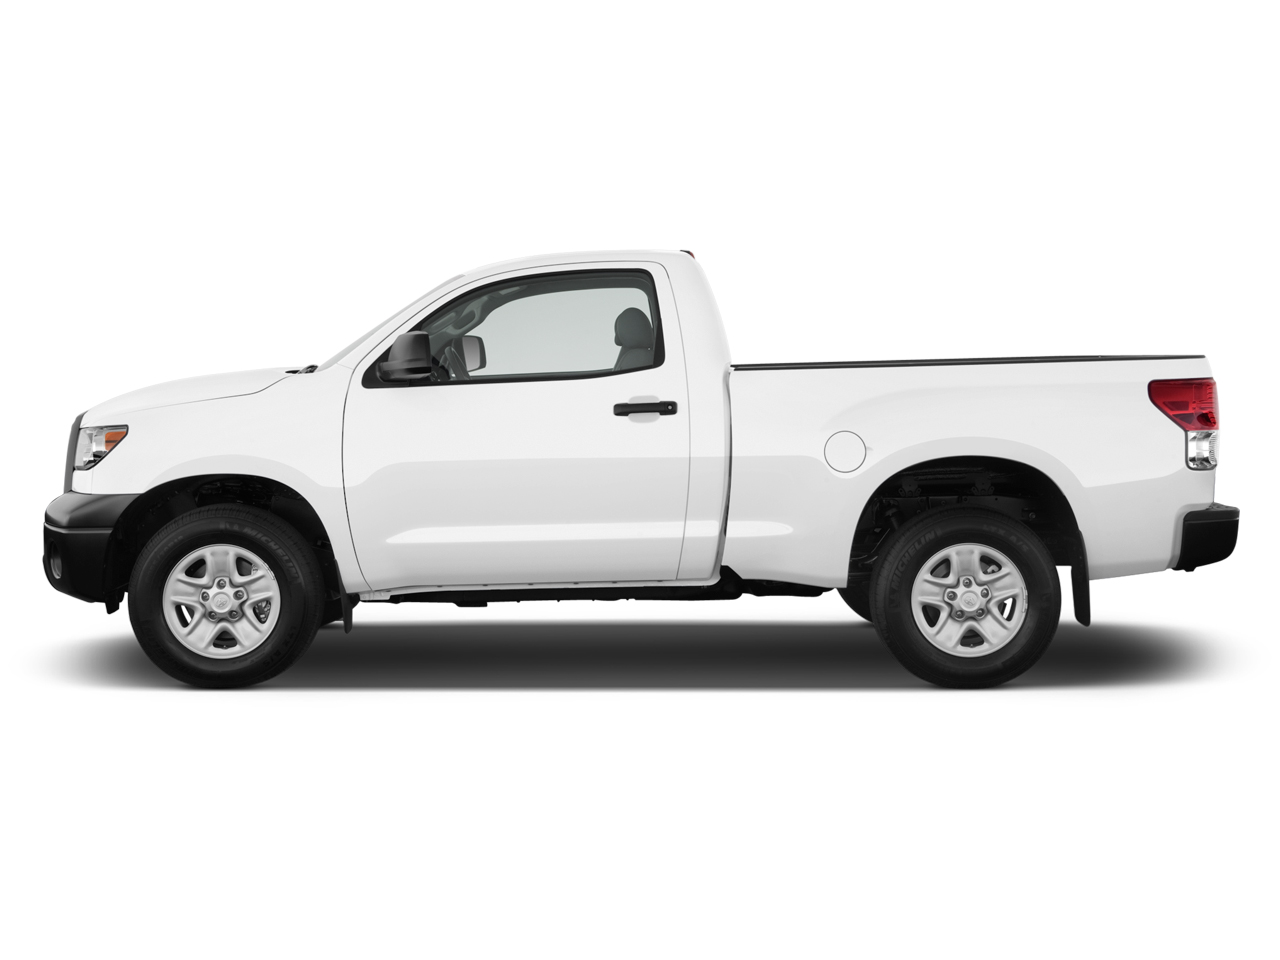 2011 toyota tundra gas mileage the car connection. Black Bedroom Furniture Sets. Home Design Ideas